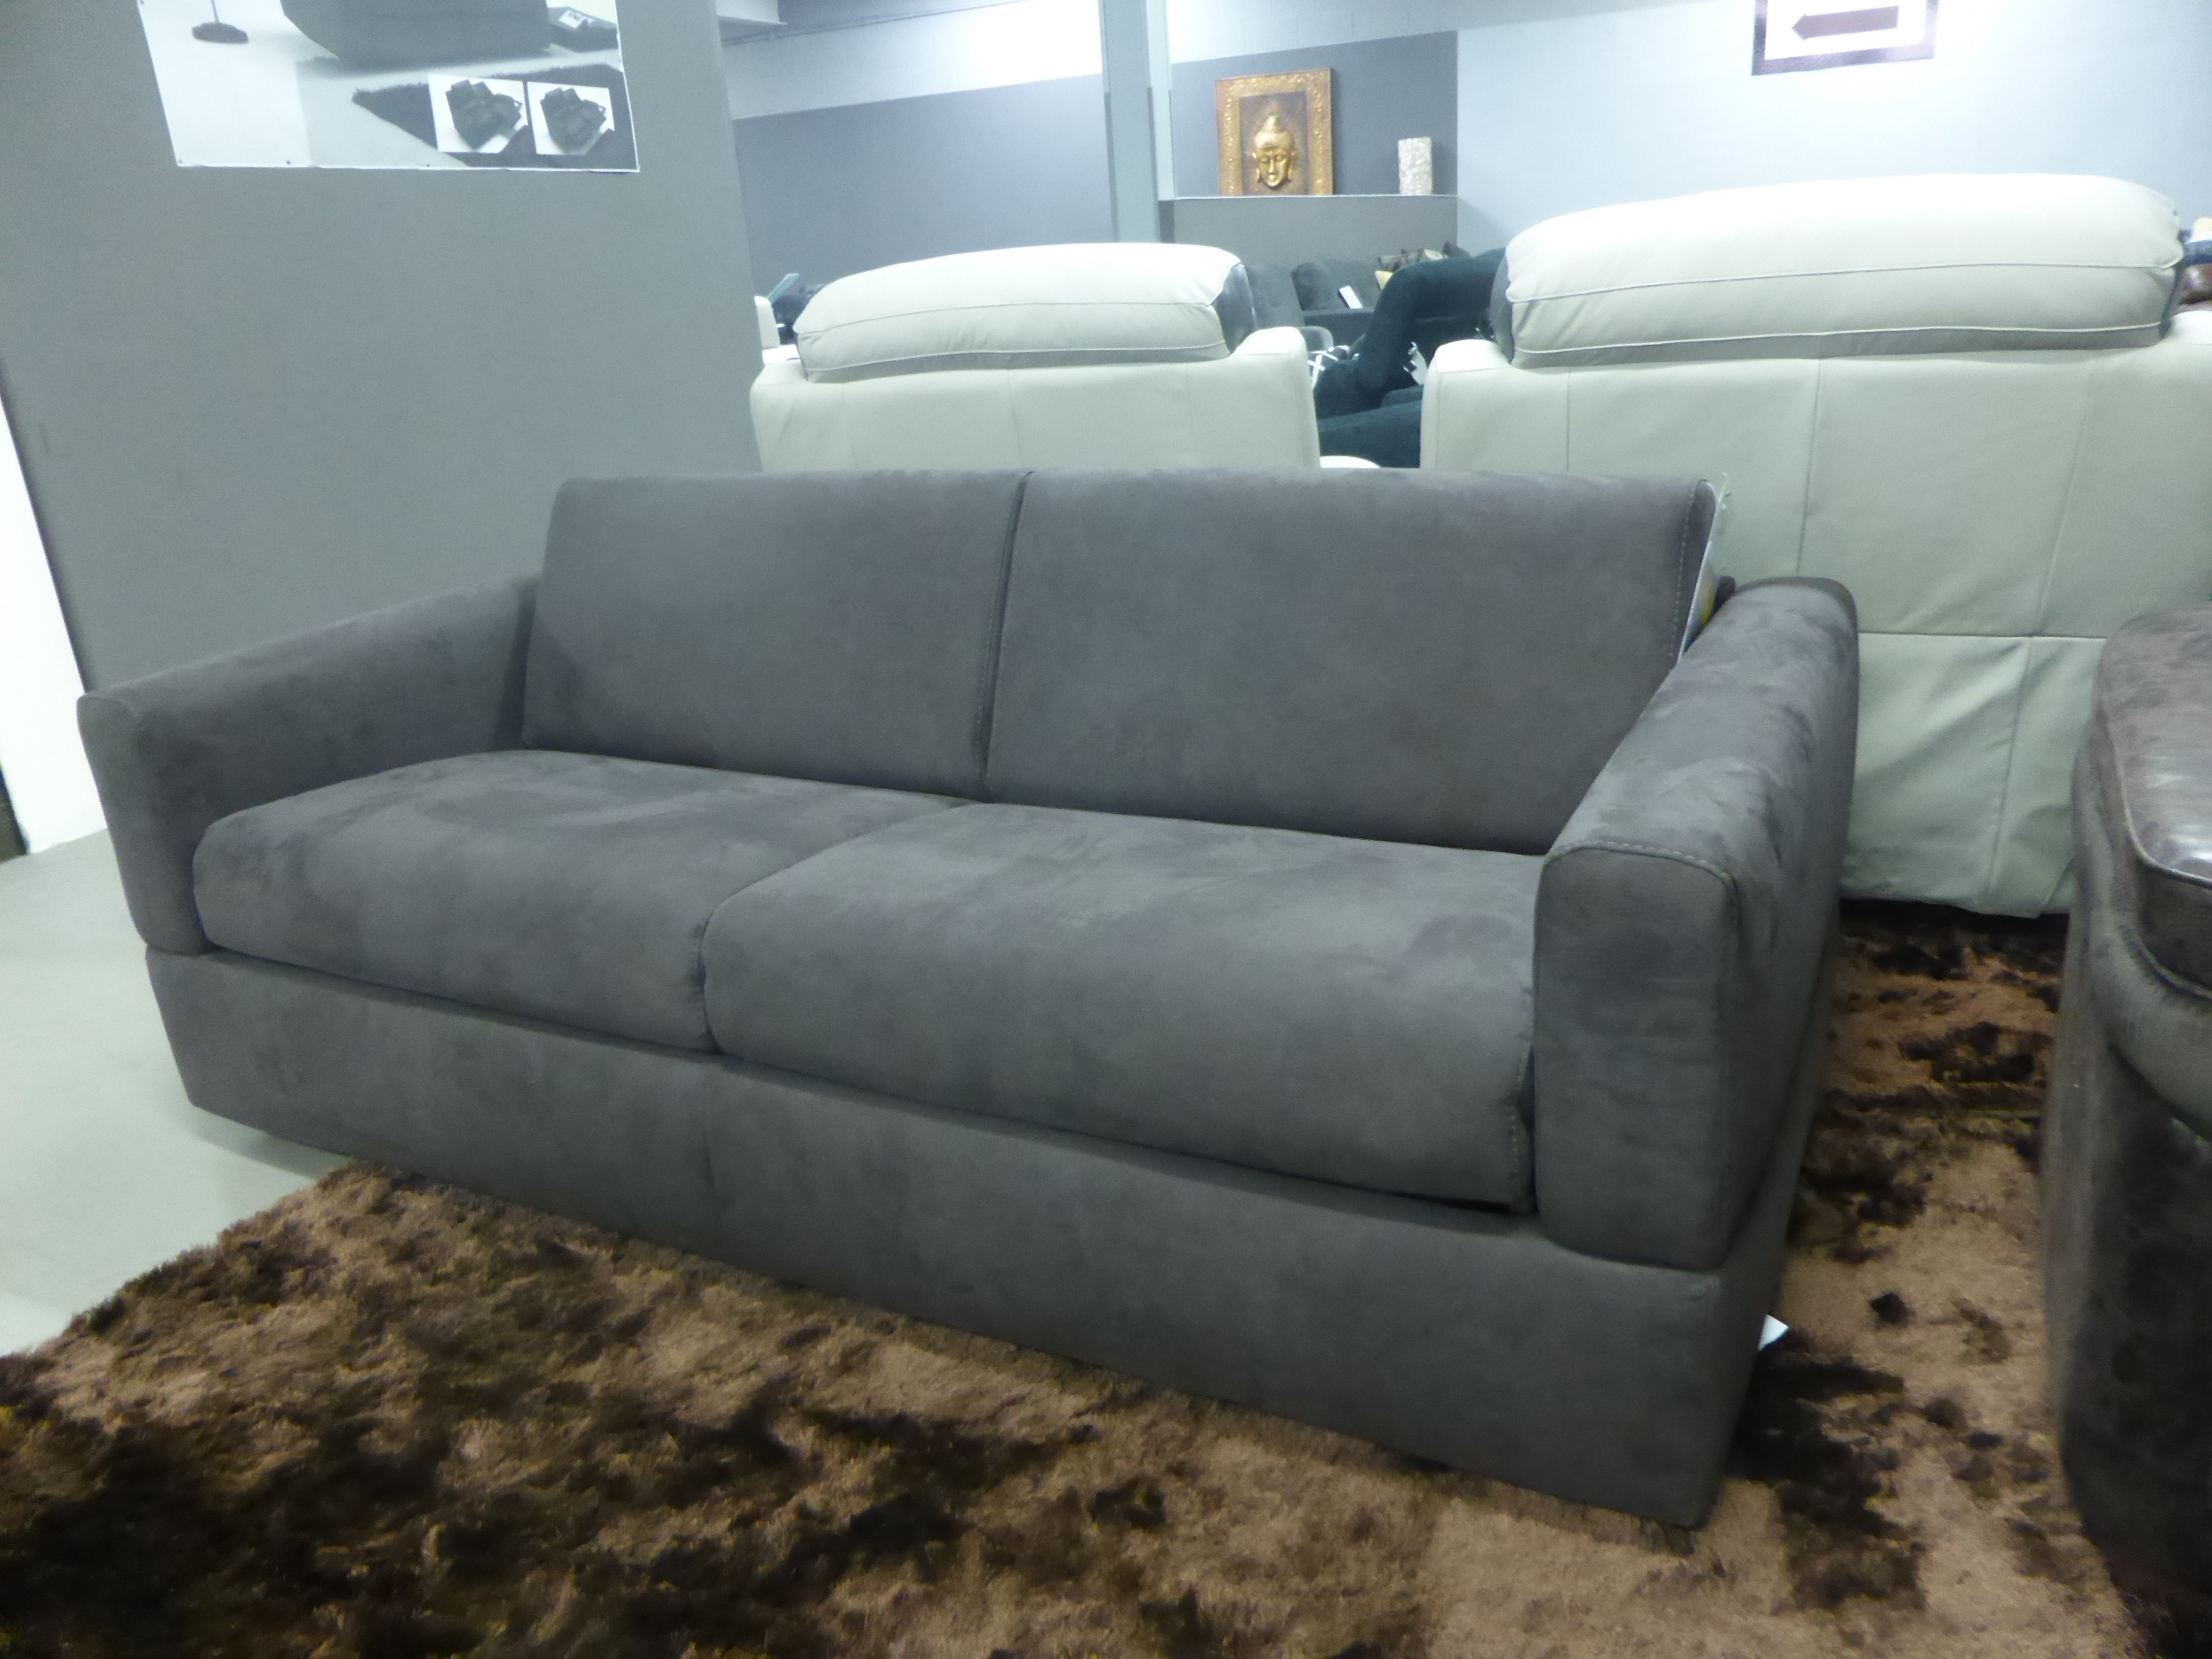 natuzzi sofa bed clearance city sweetheart rossana manufactured by comfortable brown fabric